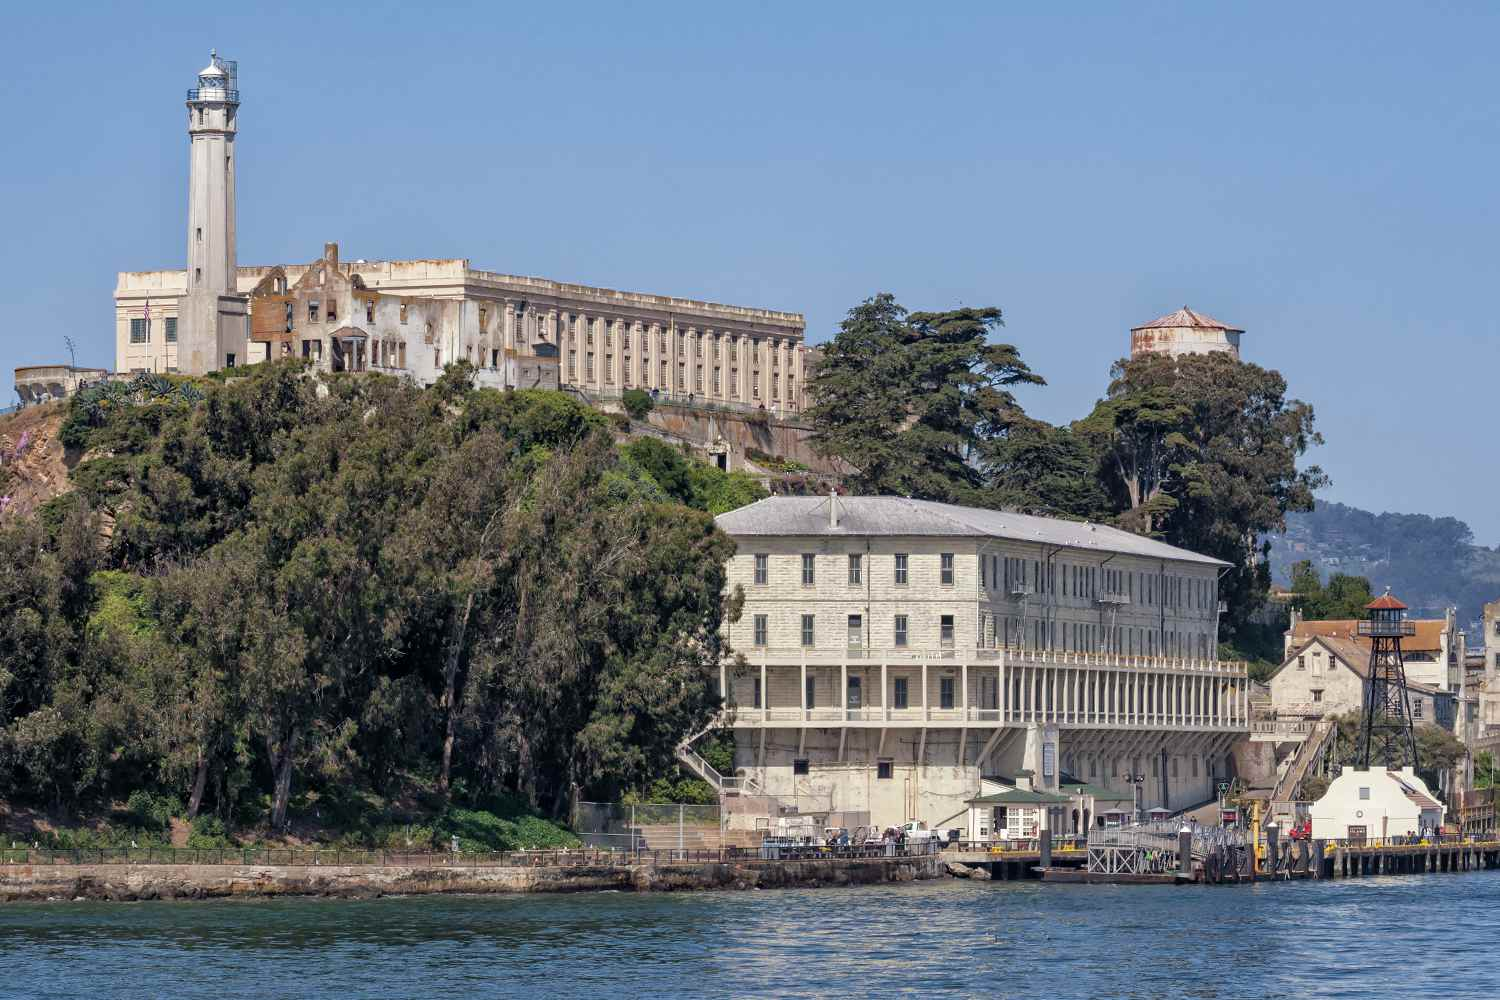 Alcatraz Island Pictures - Reasons to See the Famous Prison